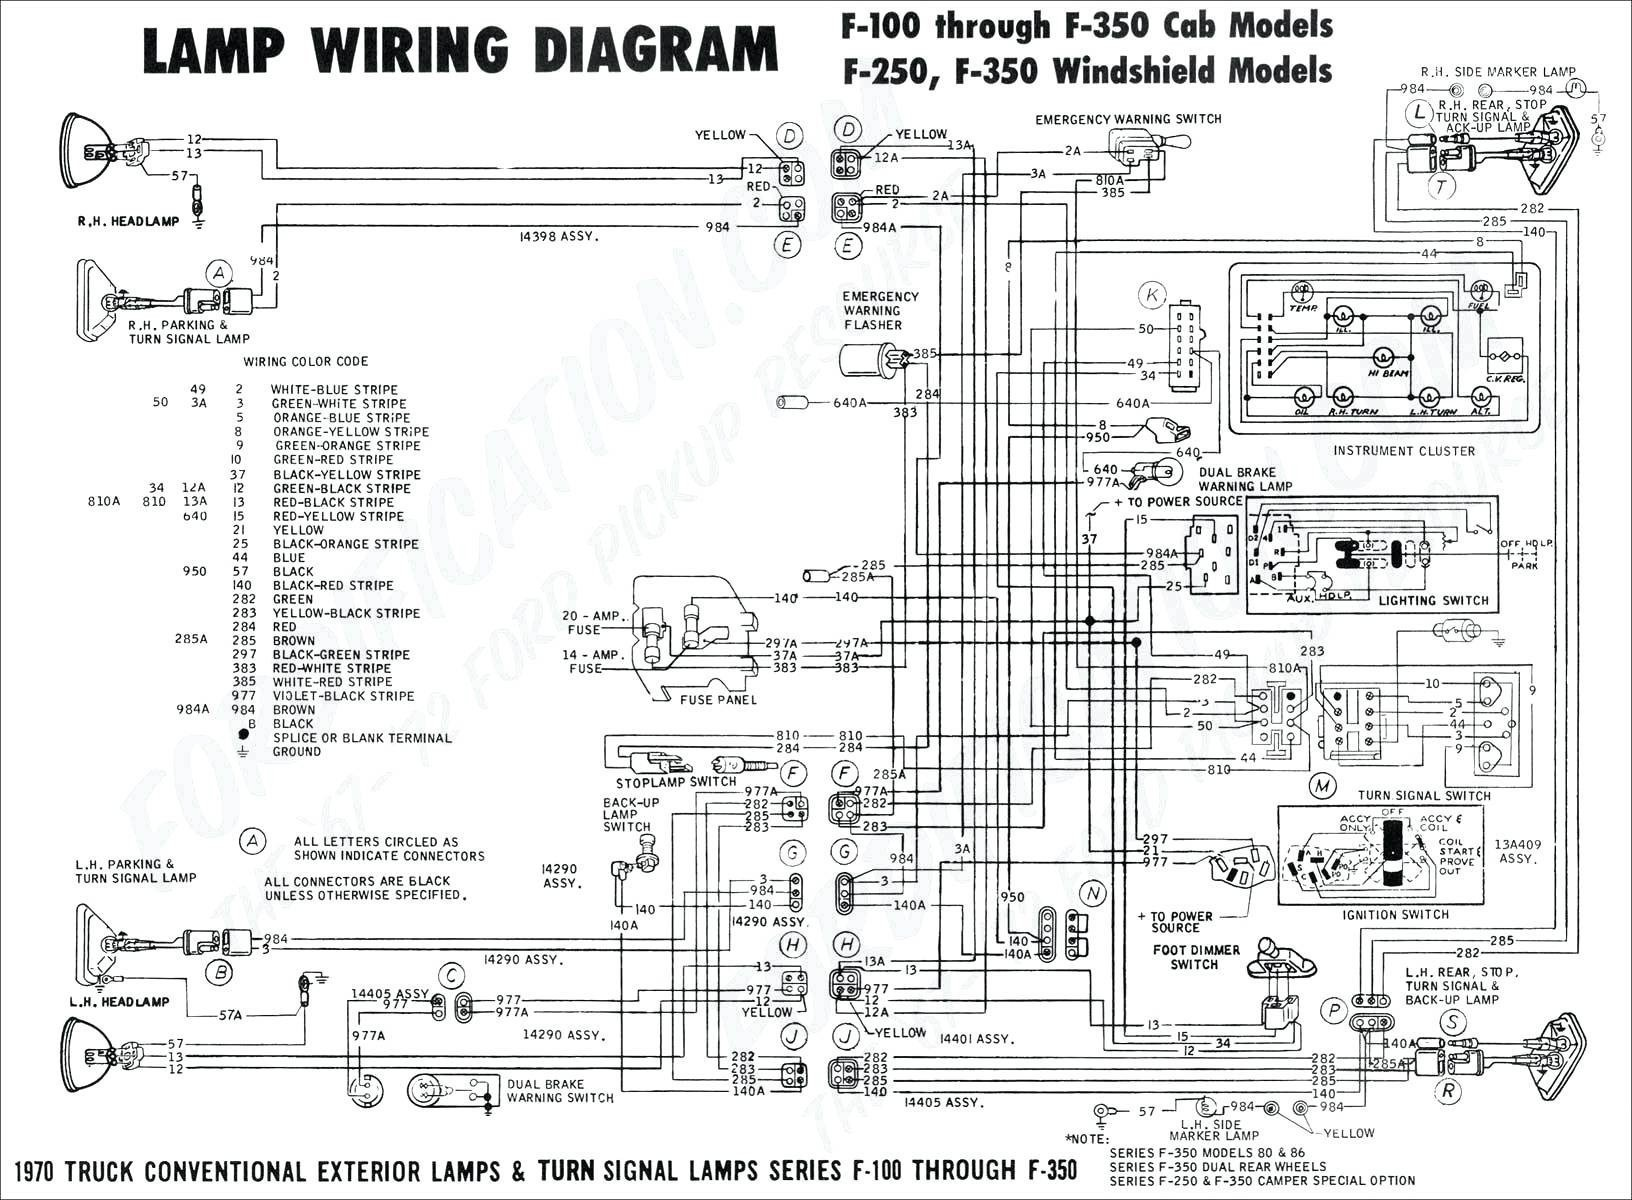 2000 isuzu Rodeo Engine Diagram 1993 isuzu Npr Fuse Panel Diagram Of 2000 isuzu Rodeo Engine Diagram isuzu Engine Schematic Wiring Diagram Inside